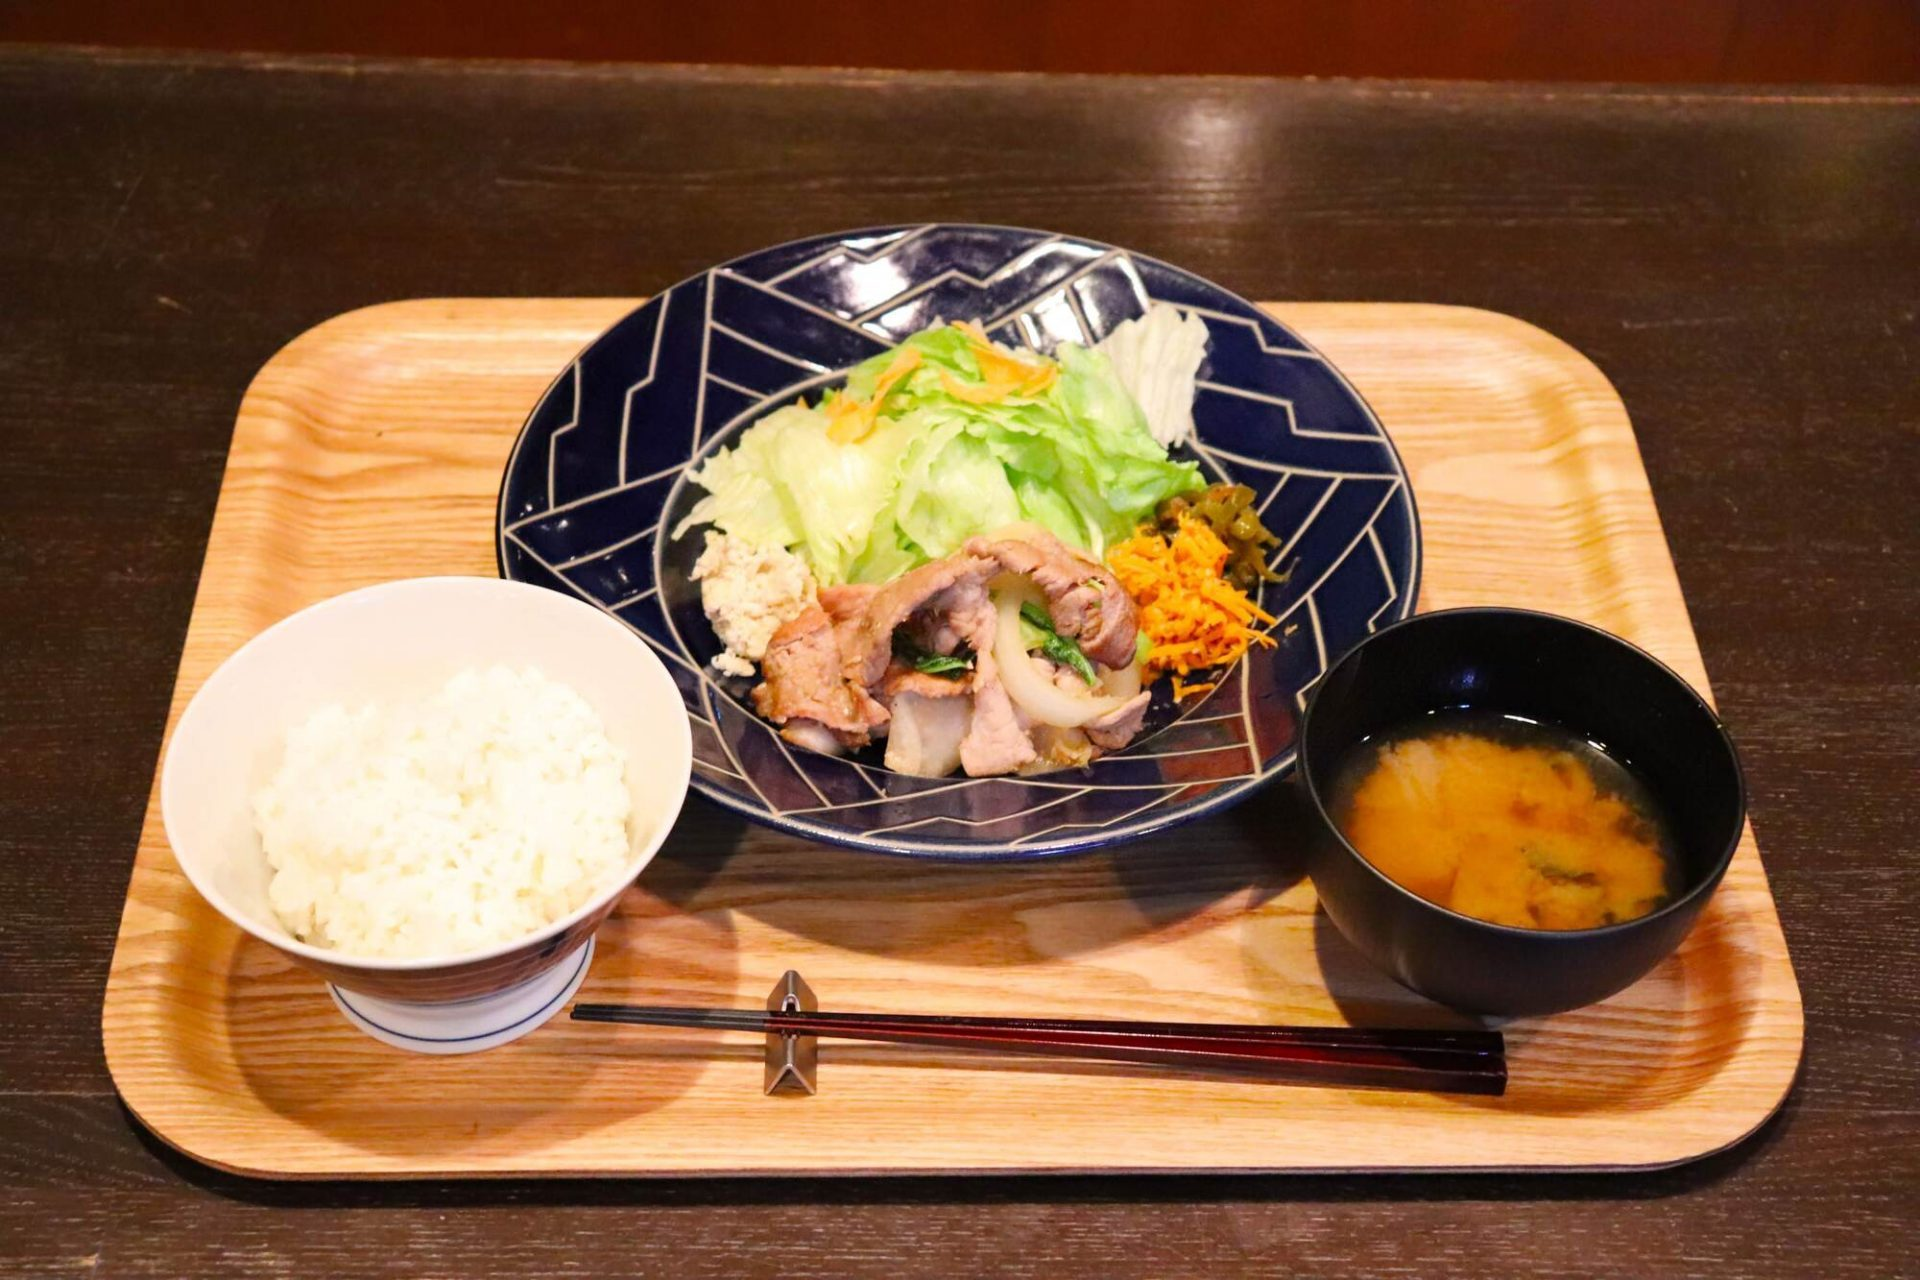 cafe ouchi: 沖縄市 ディナー 夜ご飯 おすすめ